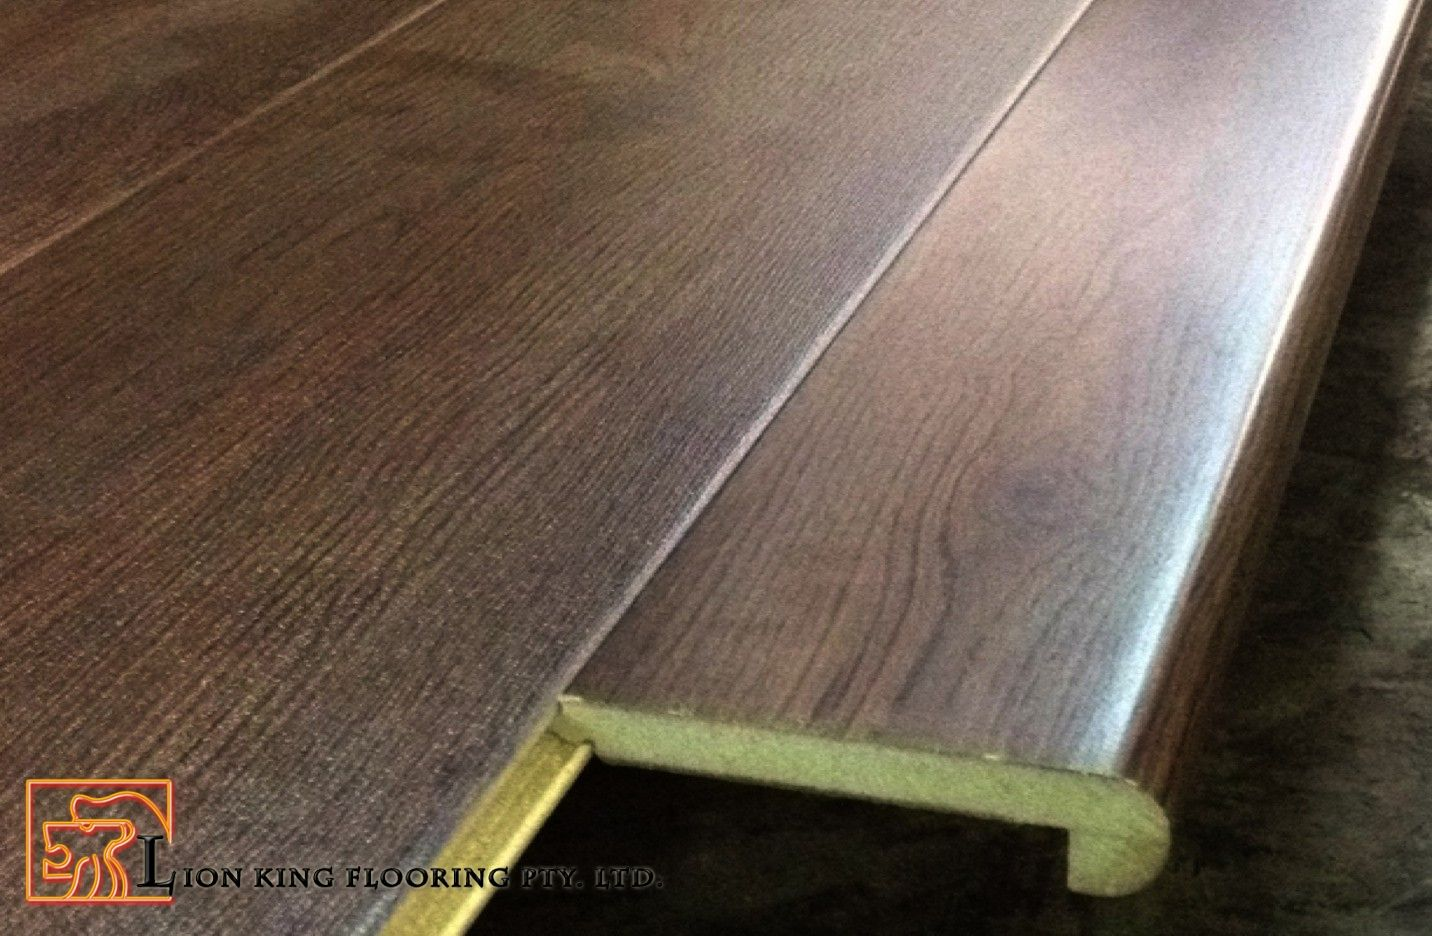 Stair Edging For Laminate Flooring Stair Edging For Laminate